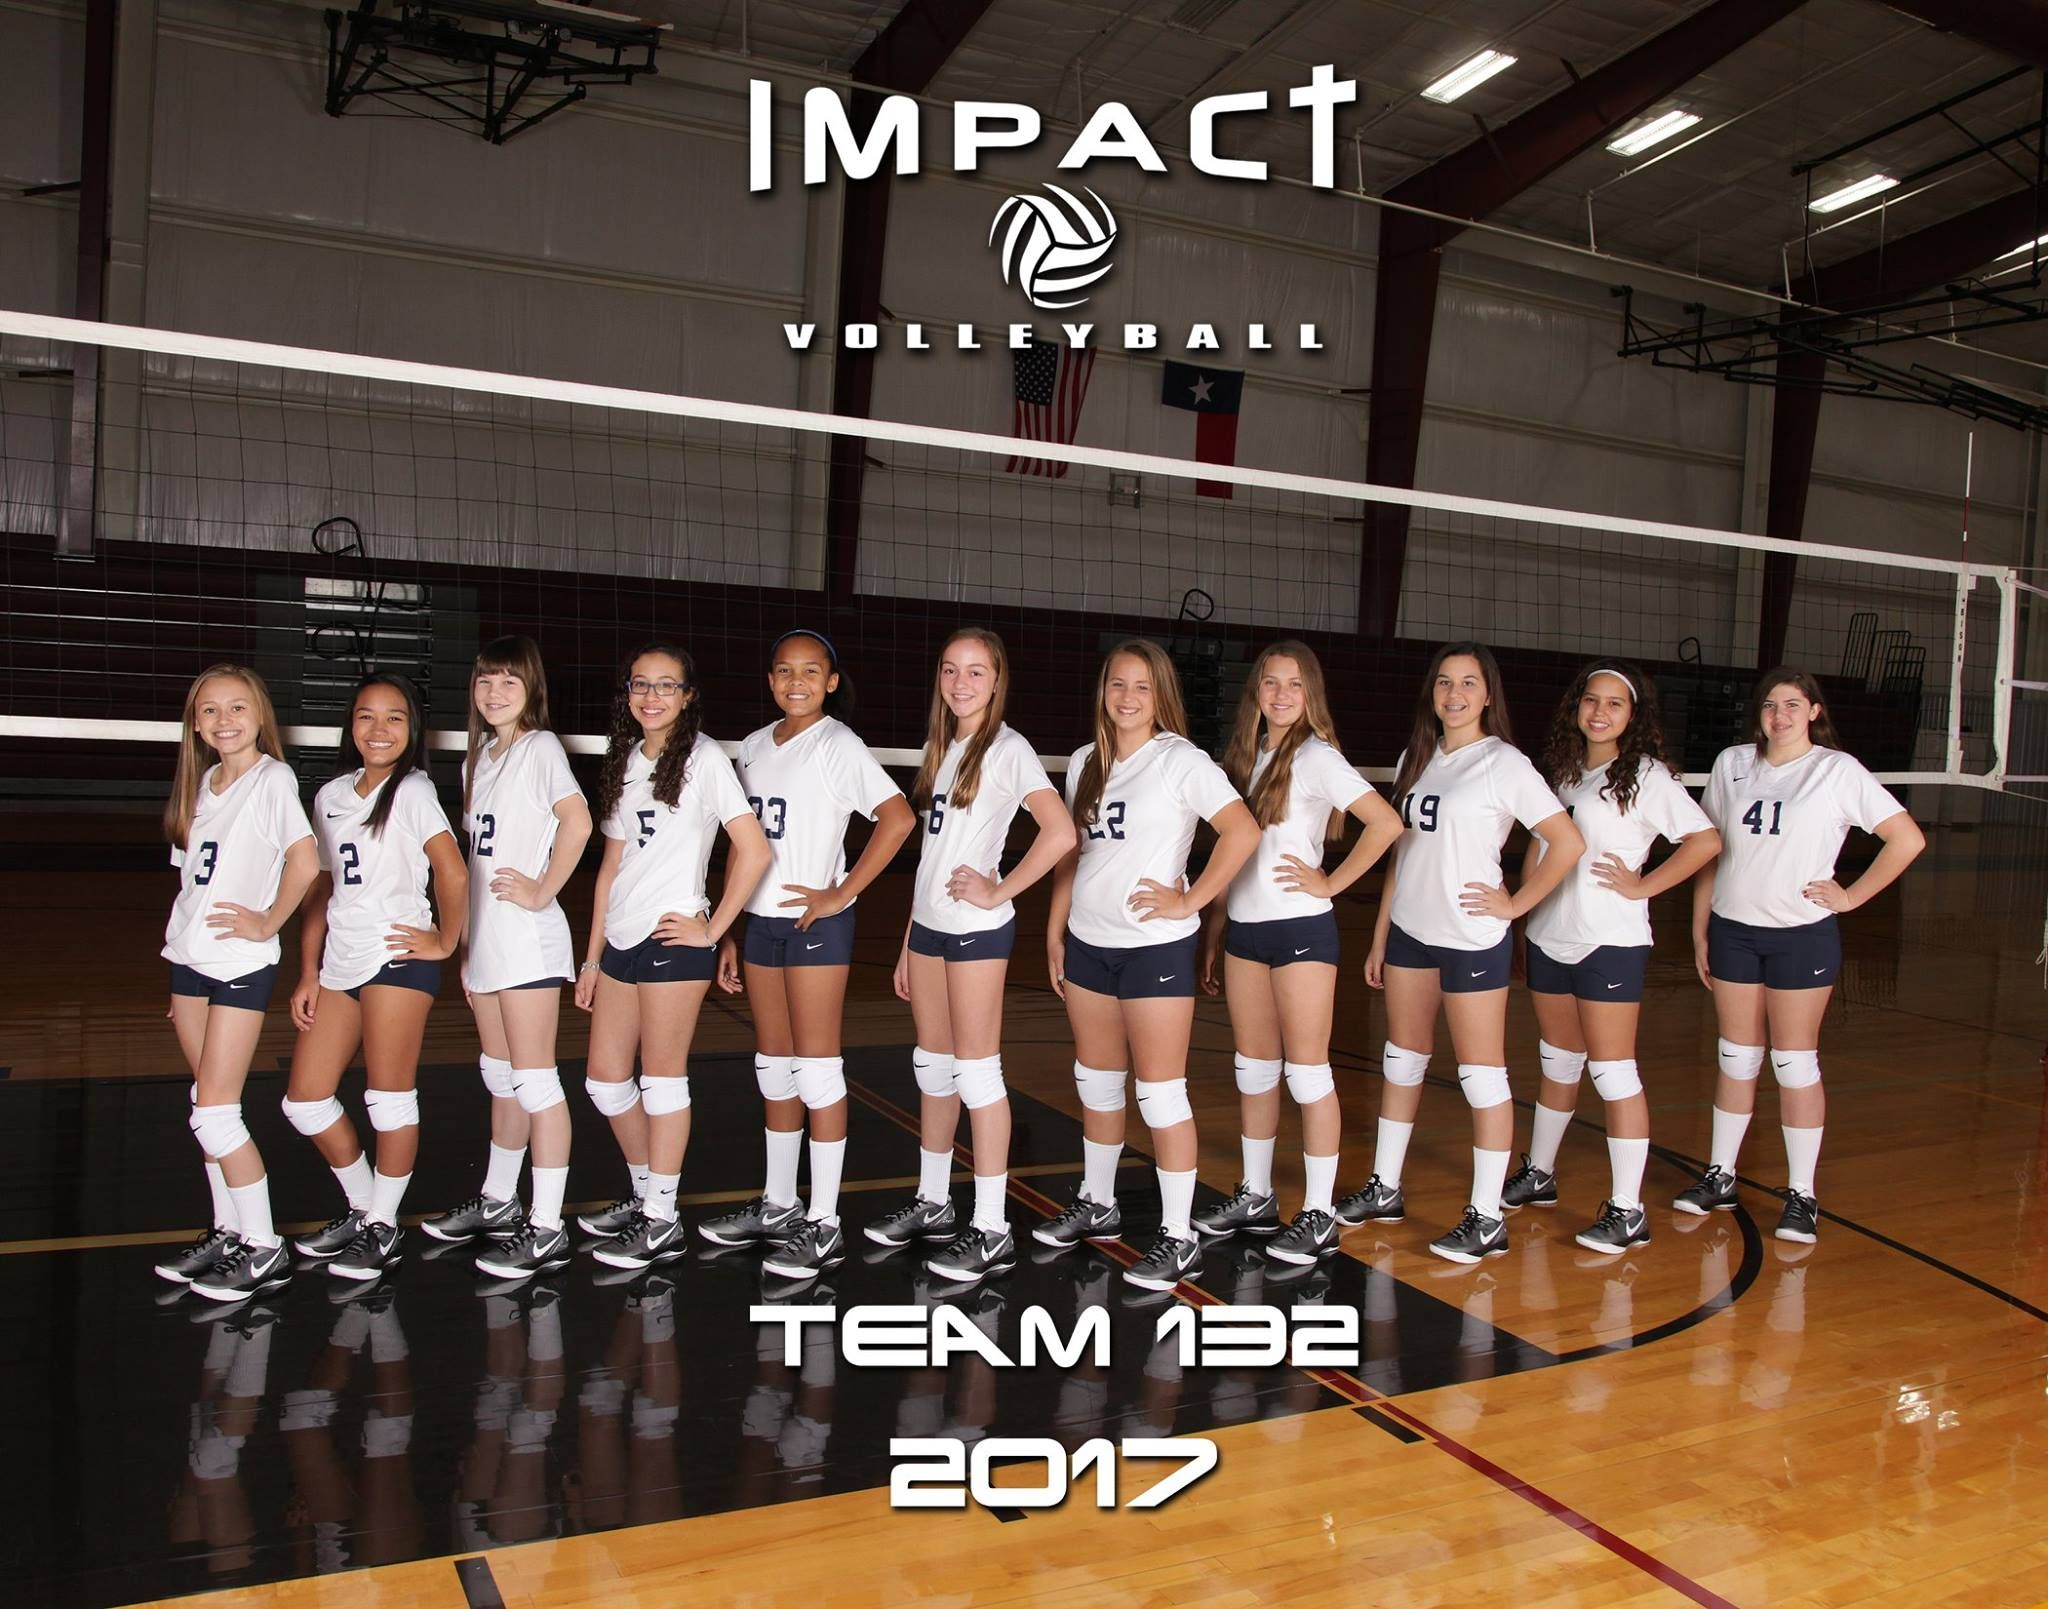 Professional Volleyball Photography San Antonio Texas Sports Team Photography Volleyball Photography Team Photography